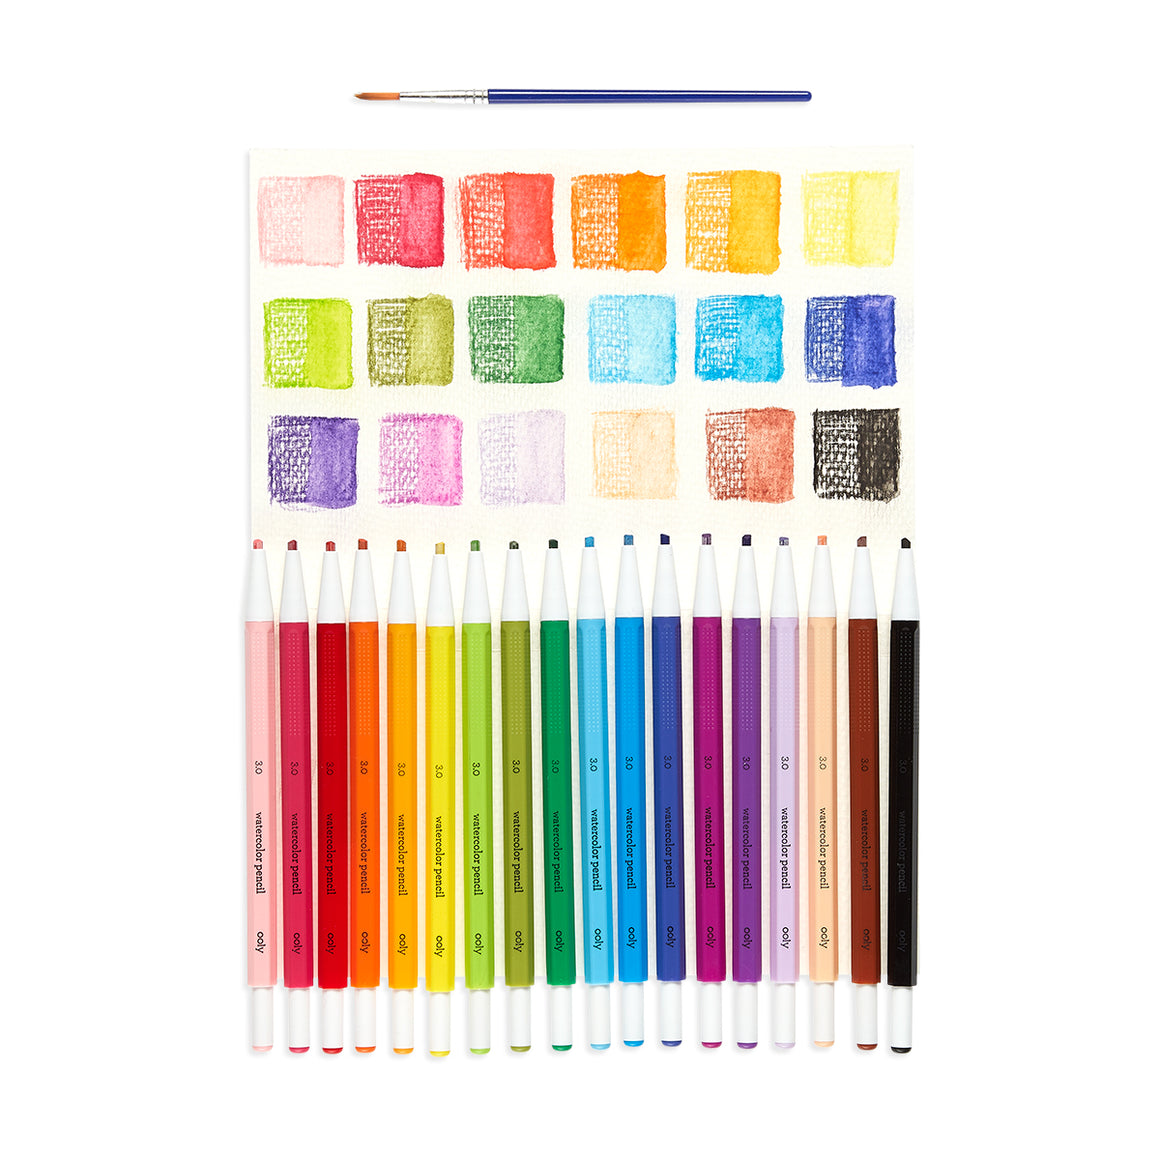 Watercolor Pencils | Chroma Blends Mechanical | Set of 18 + Refills